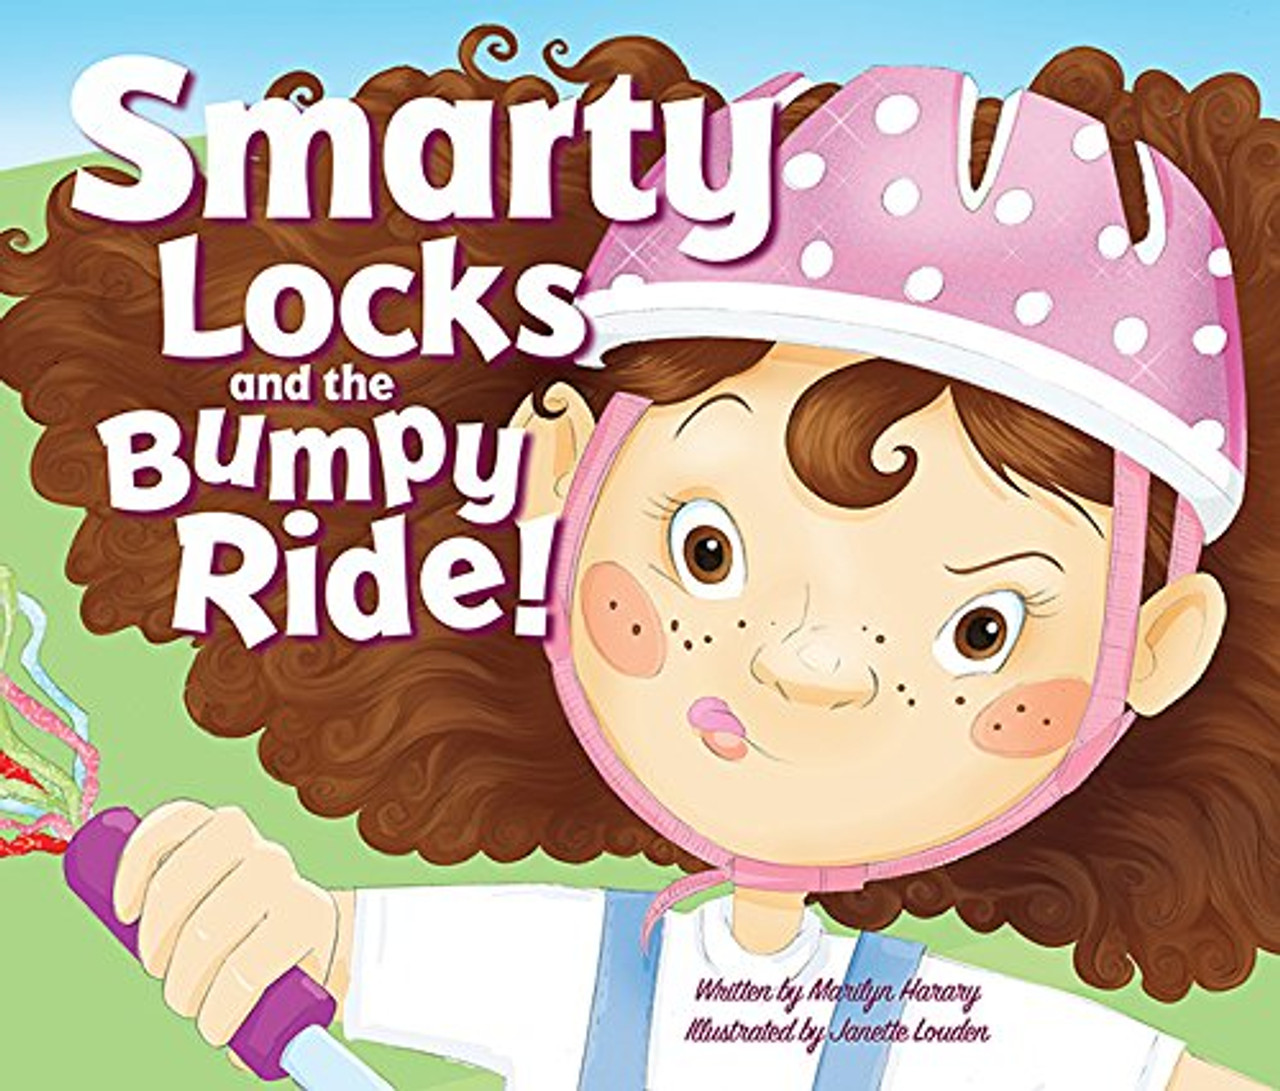 Smarty Locks and the Bumpy Ride!